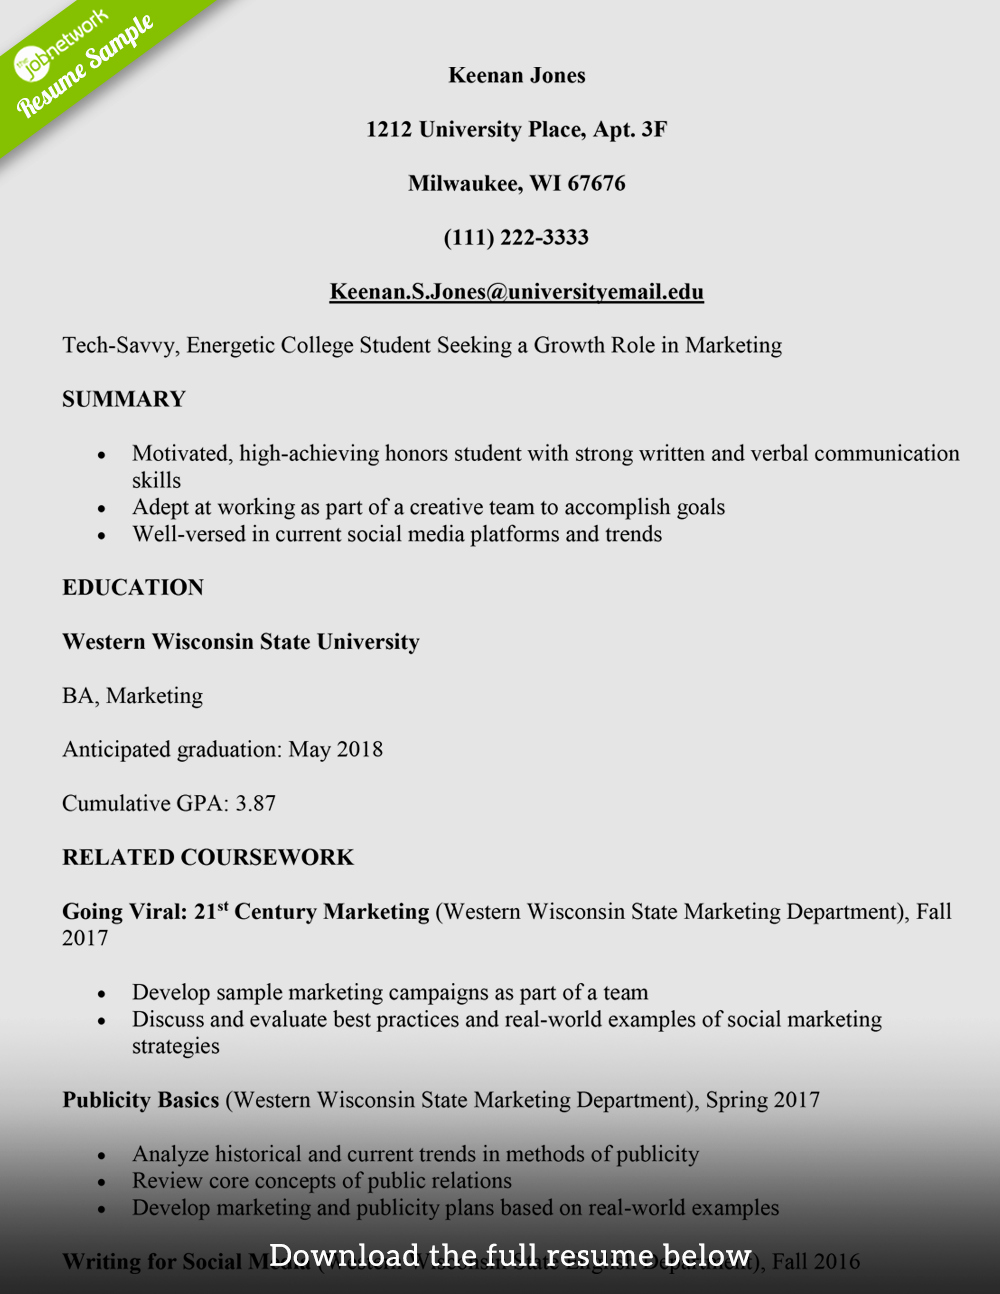 Cv Samples for Students Unique How to Write A College Student Resume with Examples